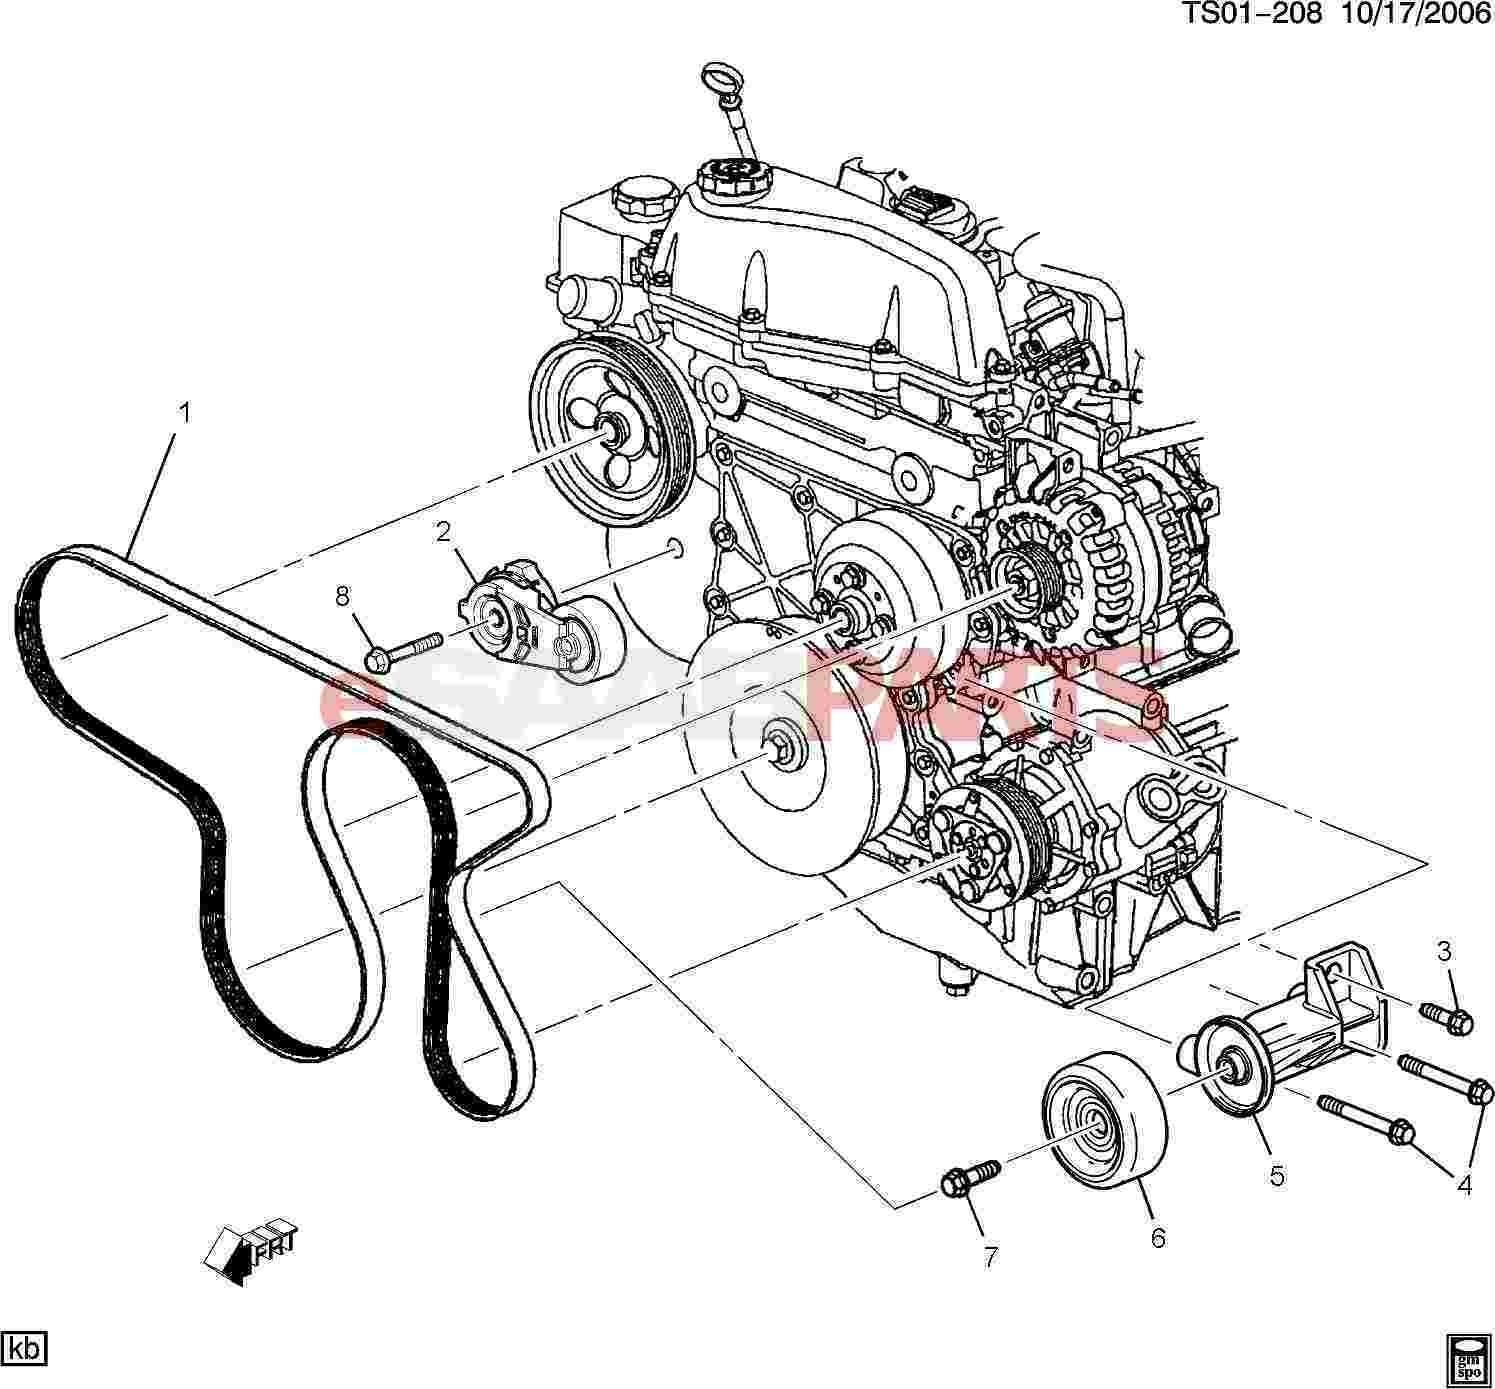 1995 Toyota Corolla Engine Diagram Wiring Library Camry 2002 Of Related Post